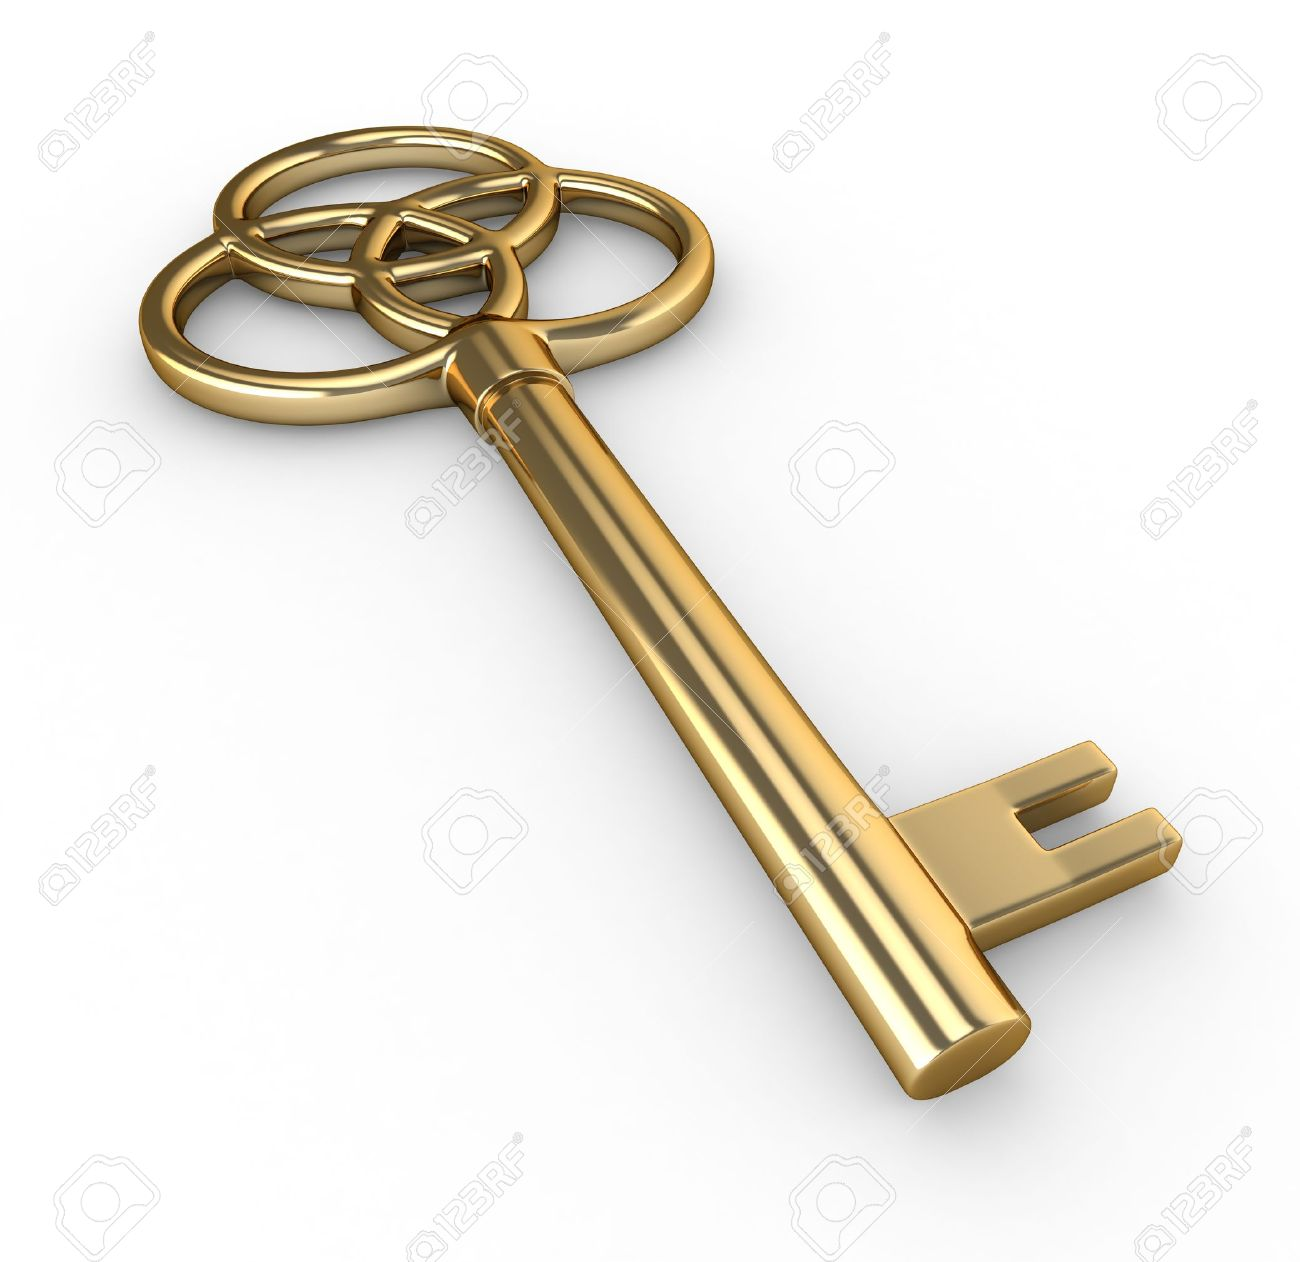 With golden key 3d rendering plan concept with golden key 3d rendering - Gold Key 3d Illustration Of A Gold Key